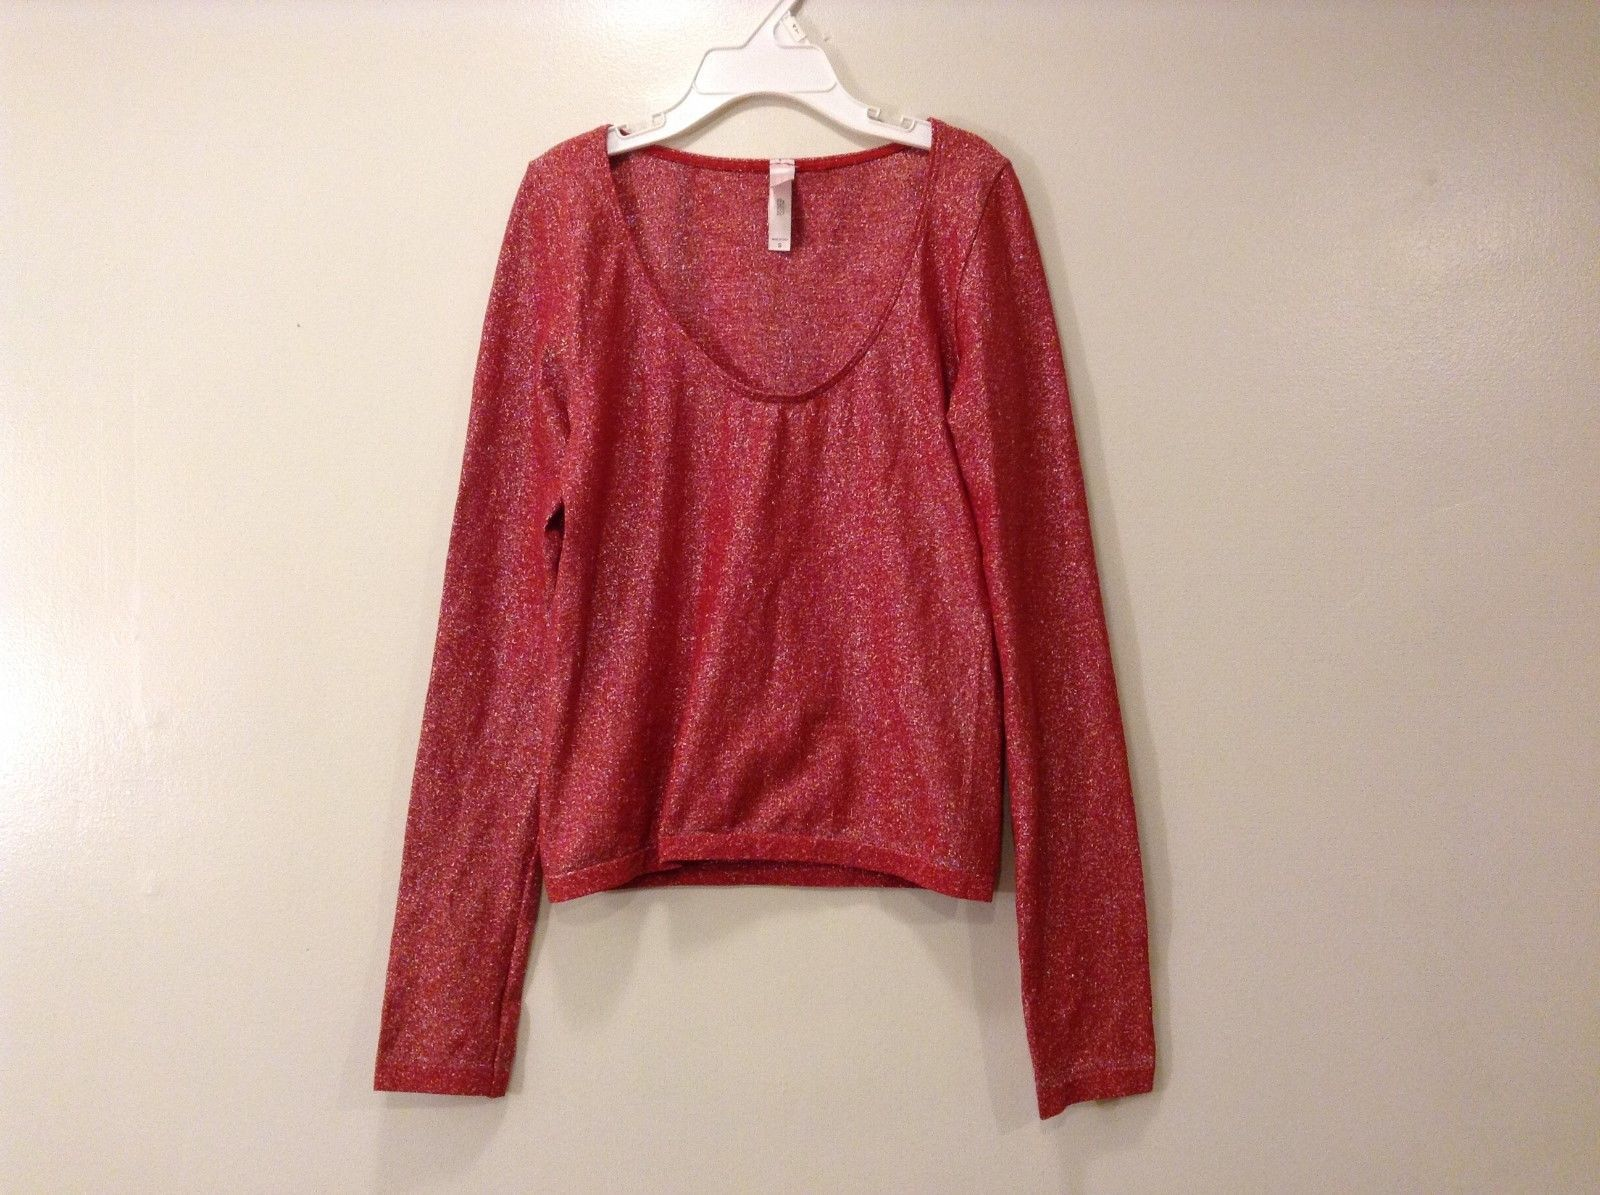 Victorias Secret Long Sleeve Metallic Red Silver Shiny Blouse Made In Italy Sz S